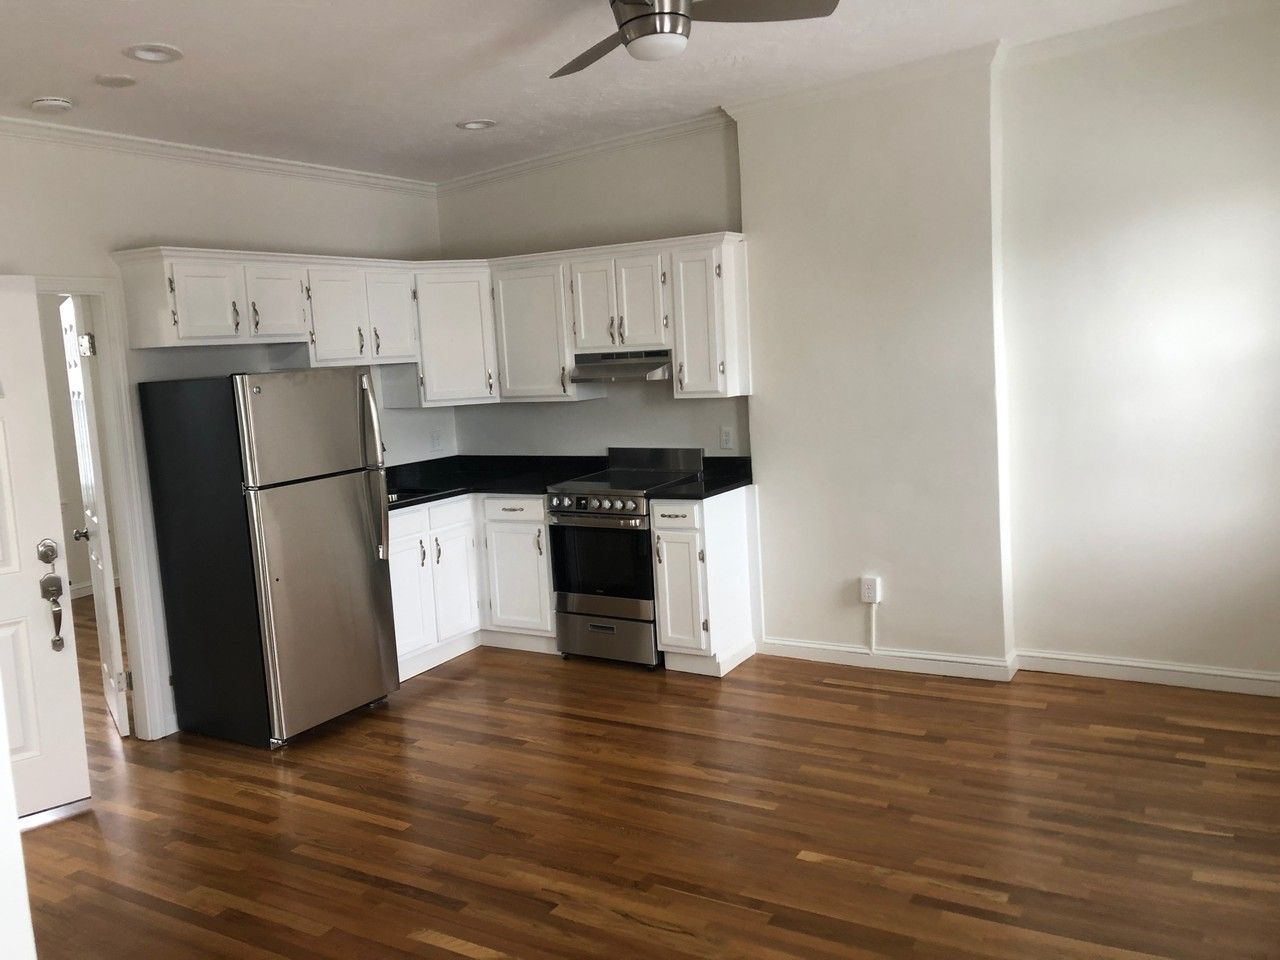 165 west 2nd street 002f boston ma 02127 1 bedroom - One bedroom apartments boston ma ...